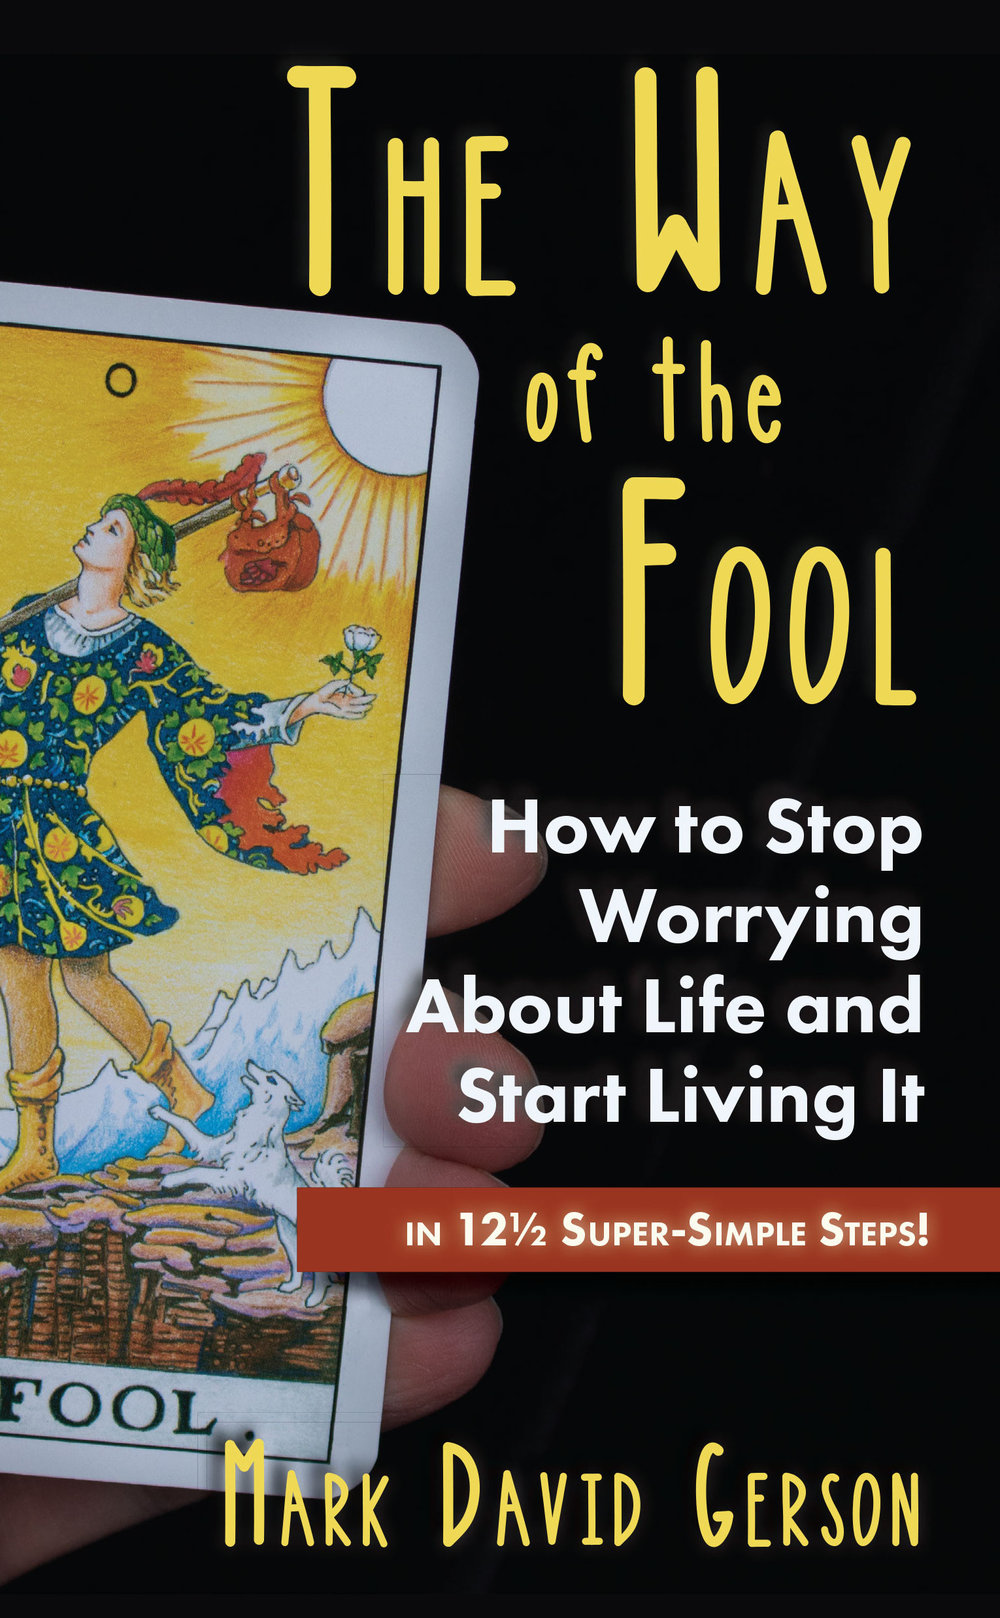 The-Way-of-the-Fool-Cover-5-26 Front copy.jpg